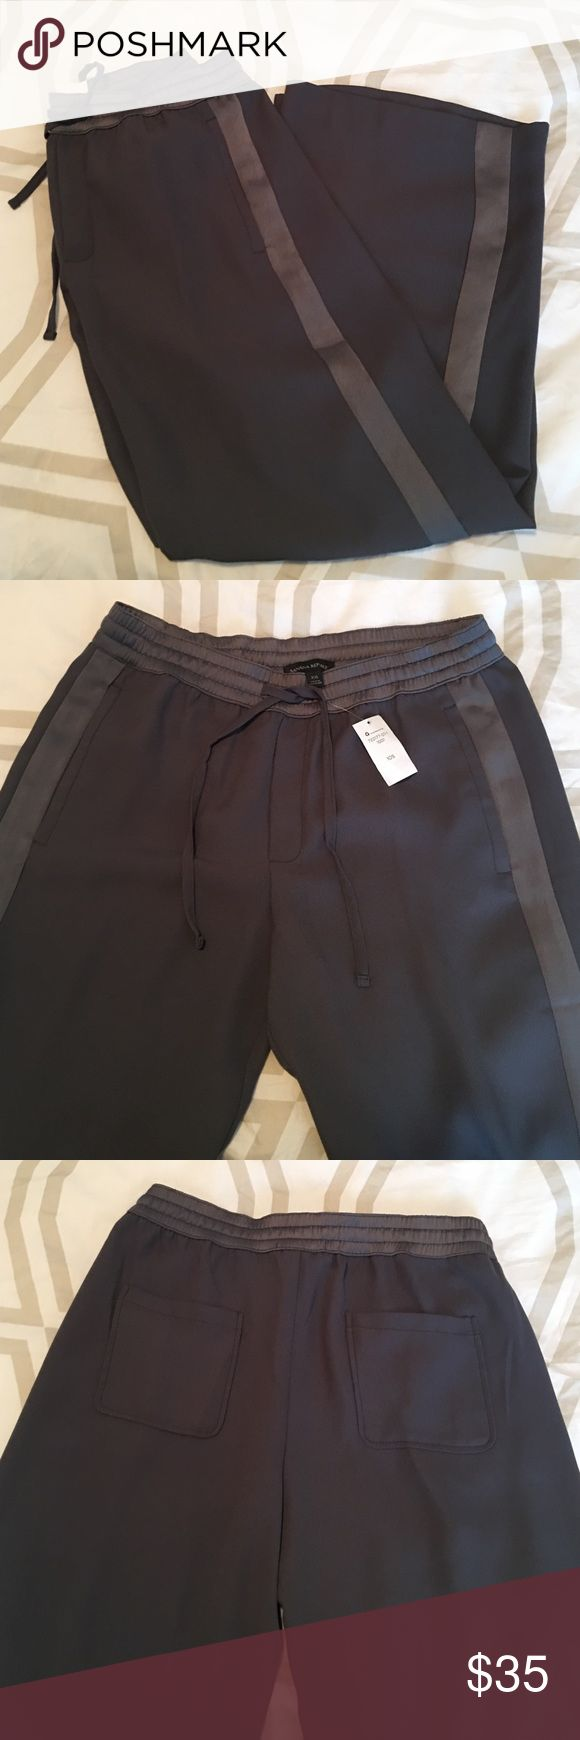 """NWT Banana republic grey pants. NWT banana republic wide leg grey """"tuxedo"""" stripe pants. 100 % polyester. Size 10 short. ( I never buy short but I wanted to wear them with sandals) super light weight and silky perfect to dress up or down! Banana Republic Pants Wide Leg"""